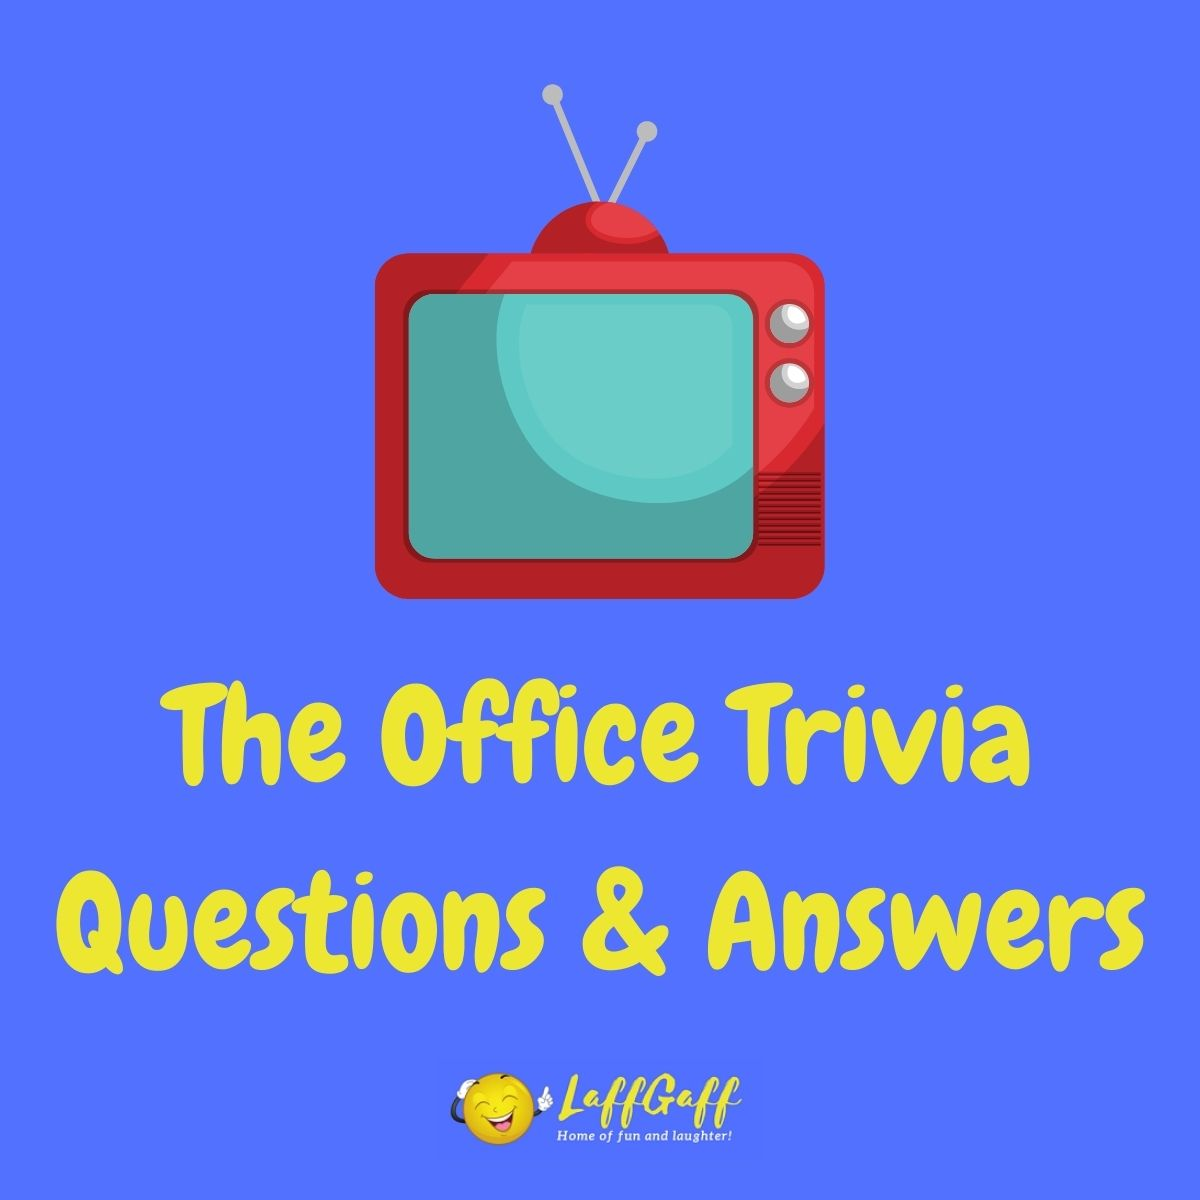 Featured image for a page of The Office trivia questions and answers.